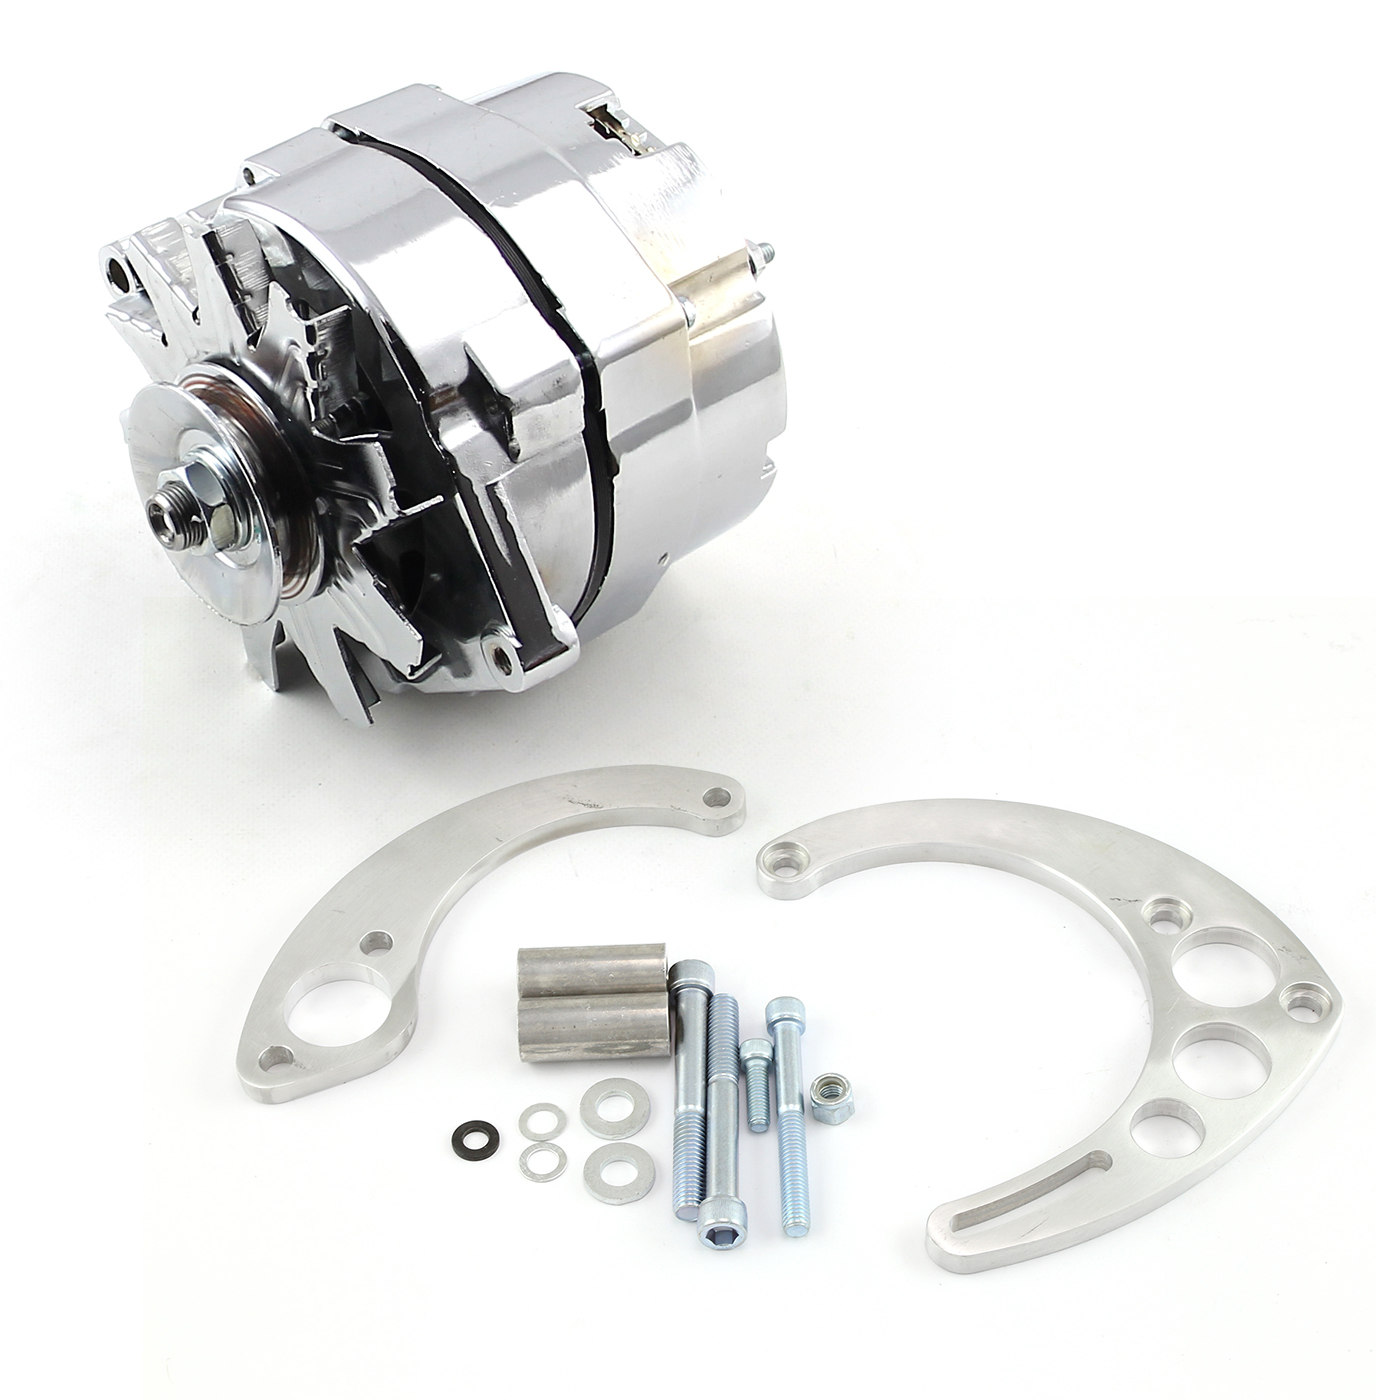 Chevy BBC 454 100 Amp 1 Wire Alternator & Short/Electric Pump Billet Bracket Kit